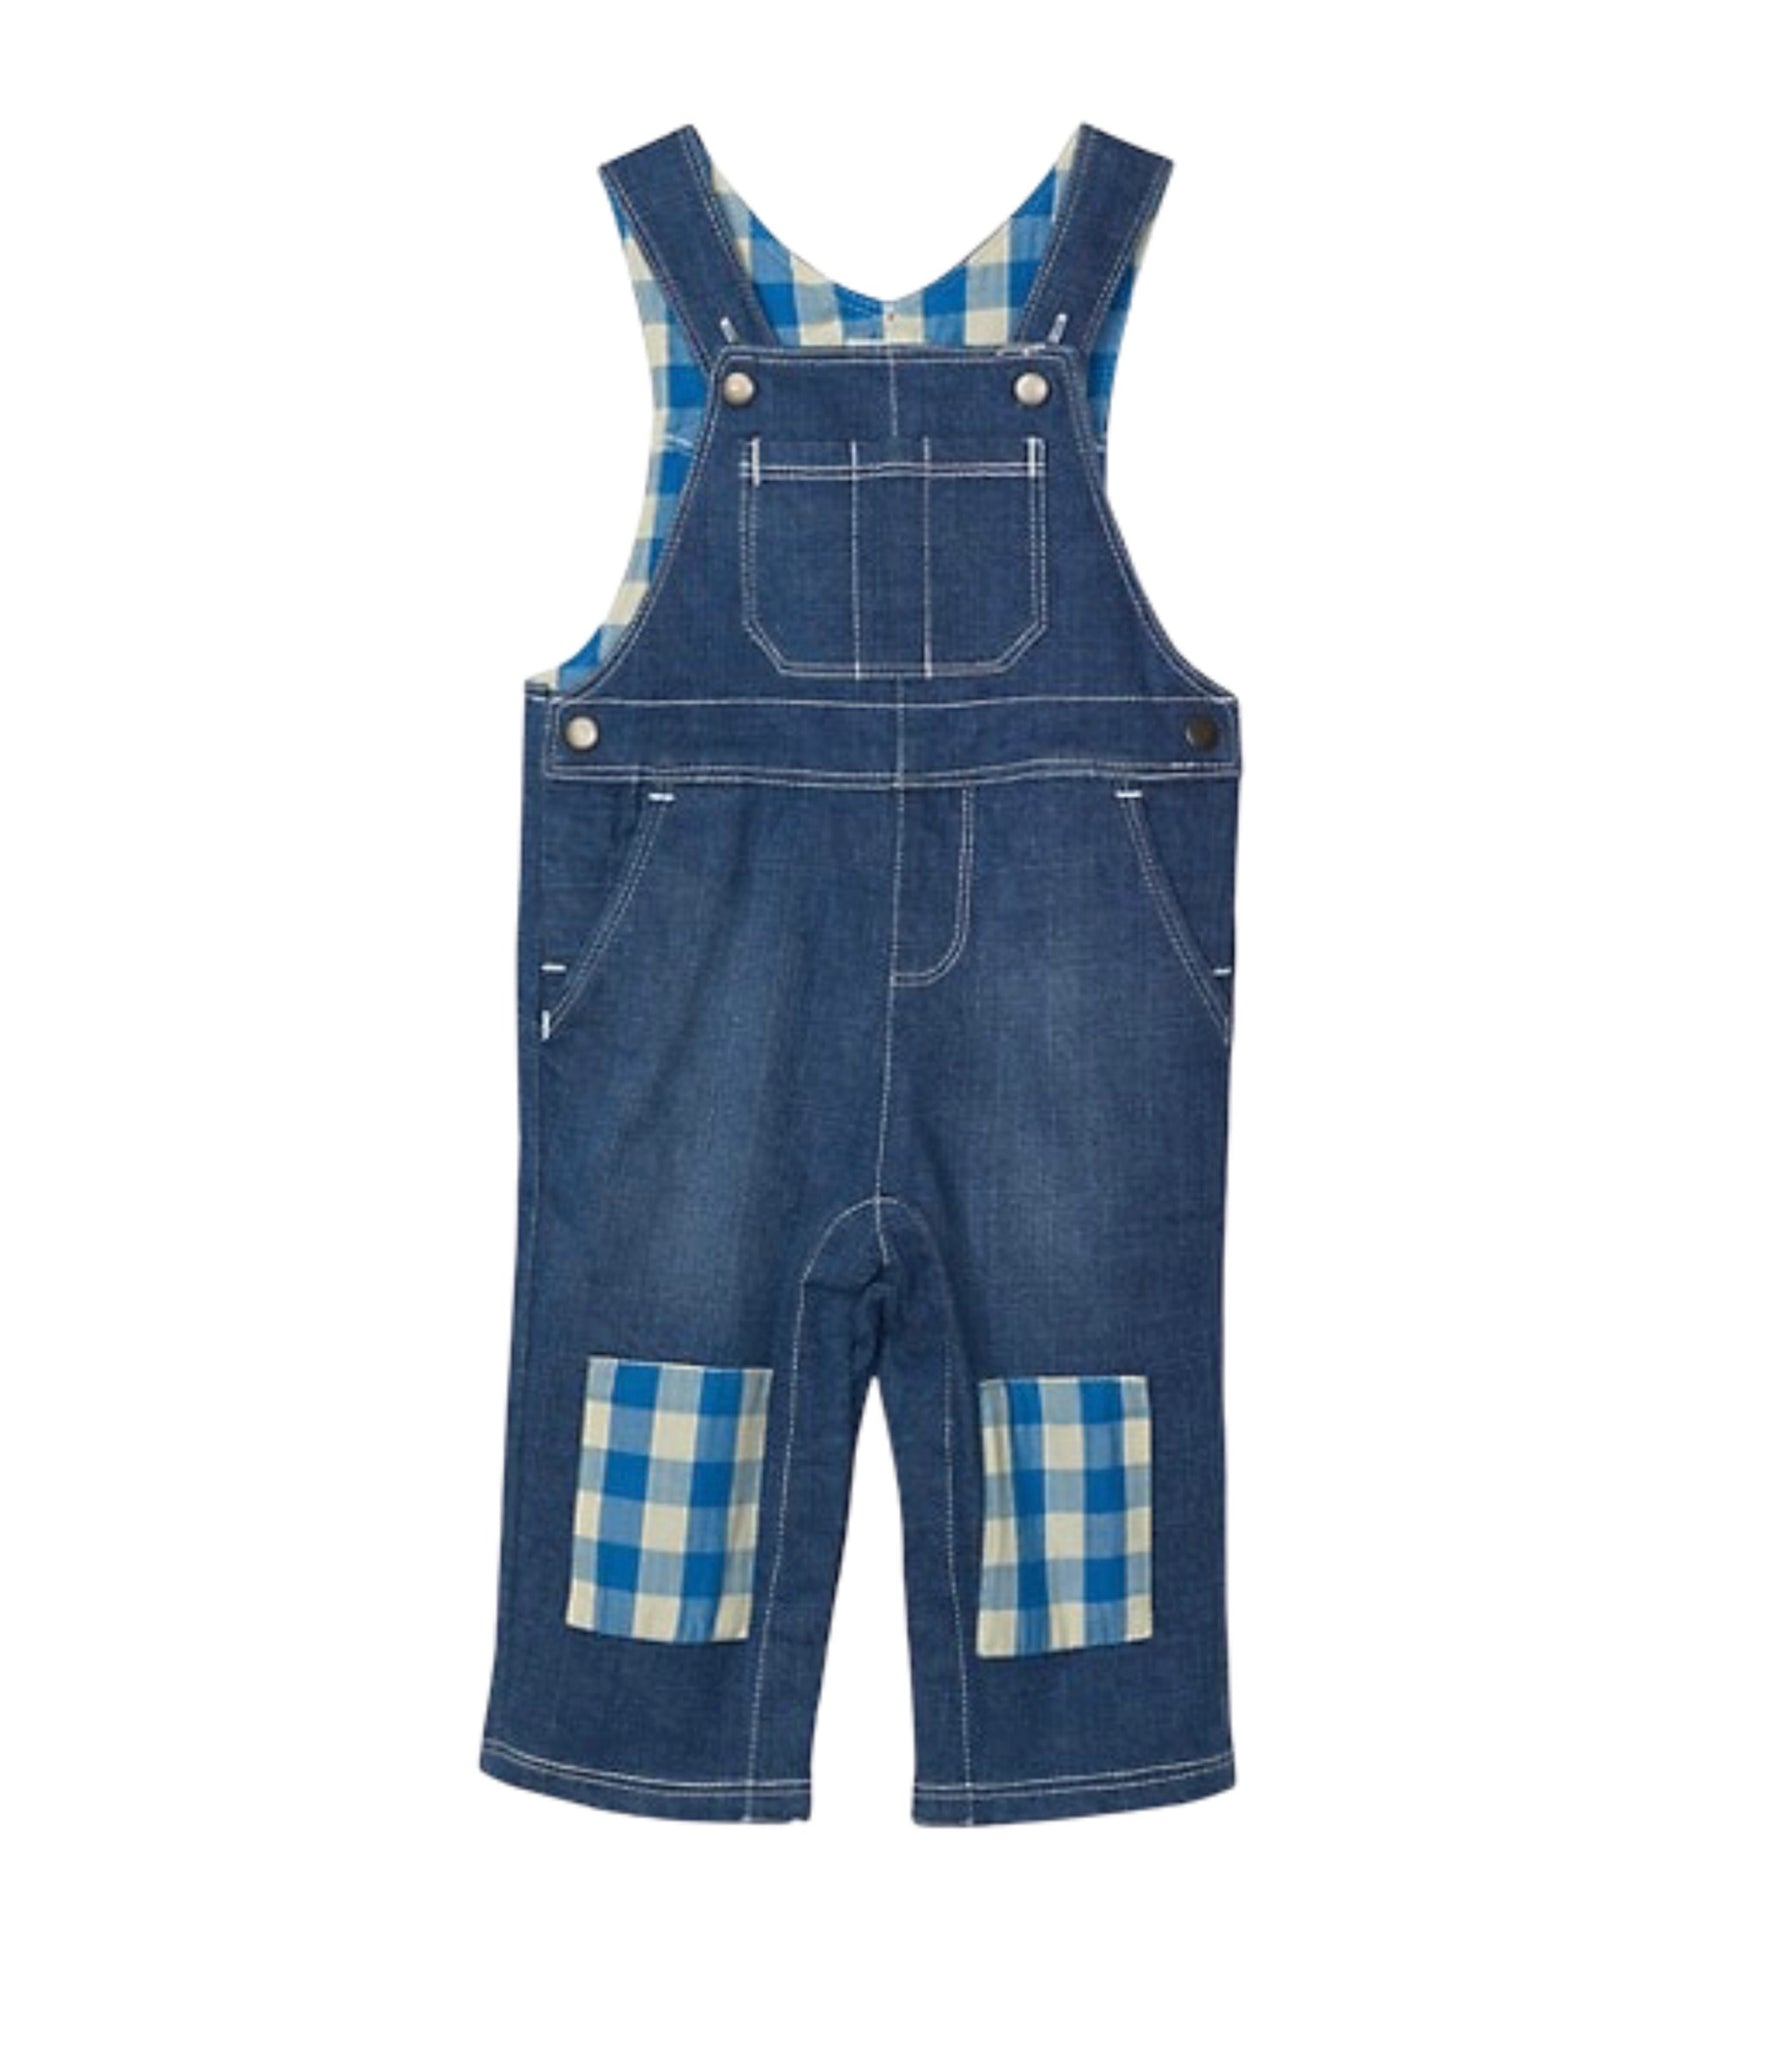 Gingham Patch Overalls